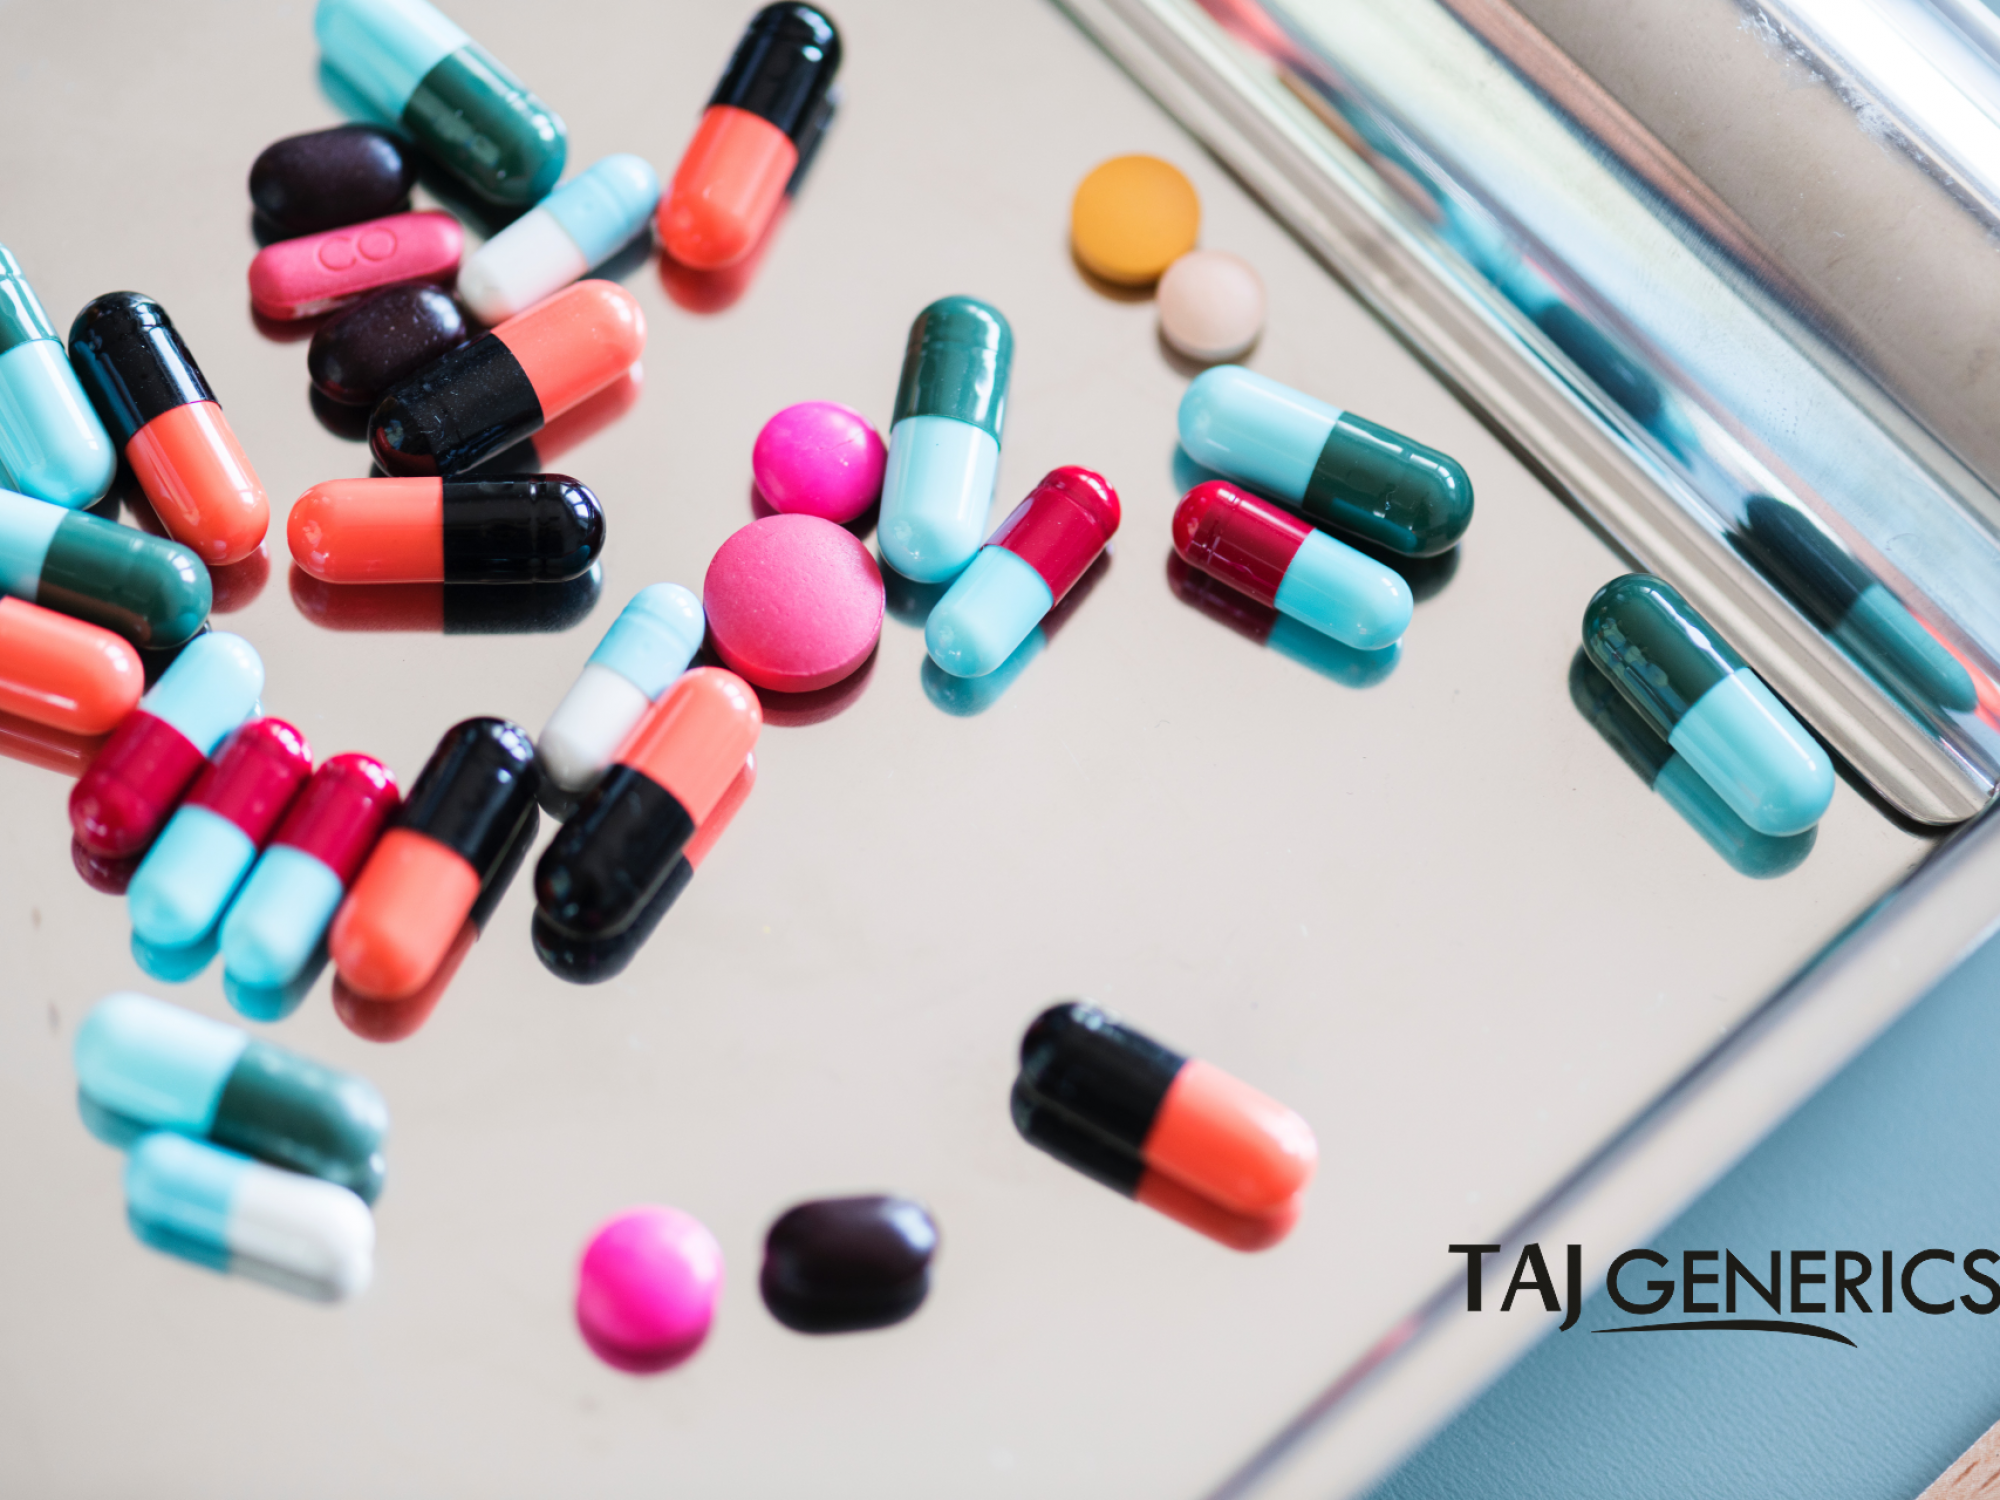 Are generic drugs always cheaper?